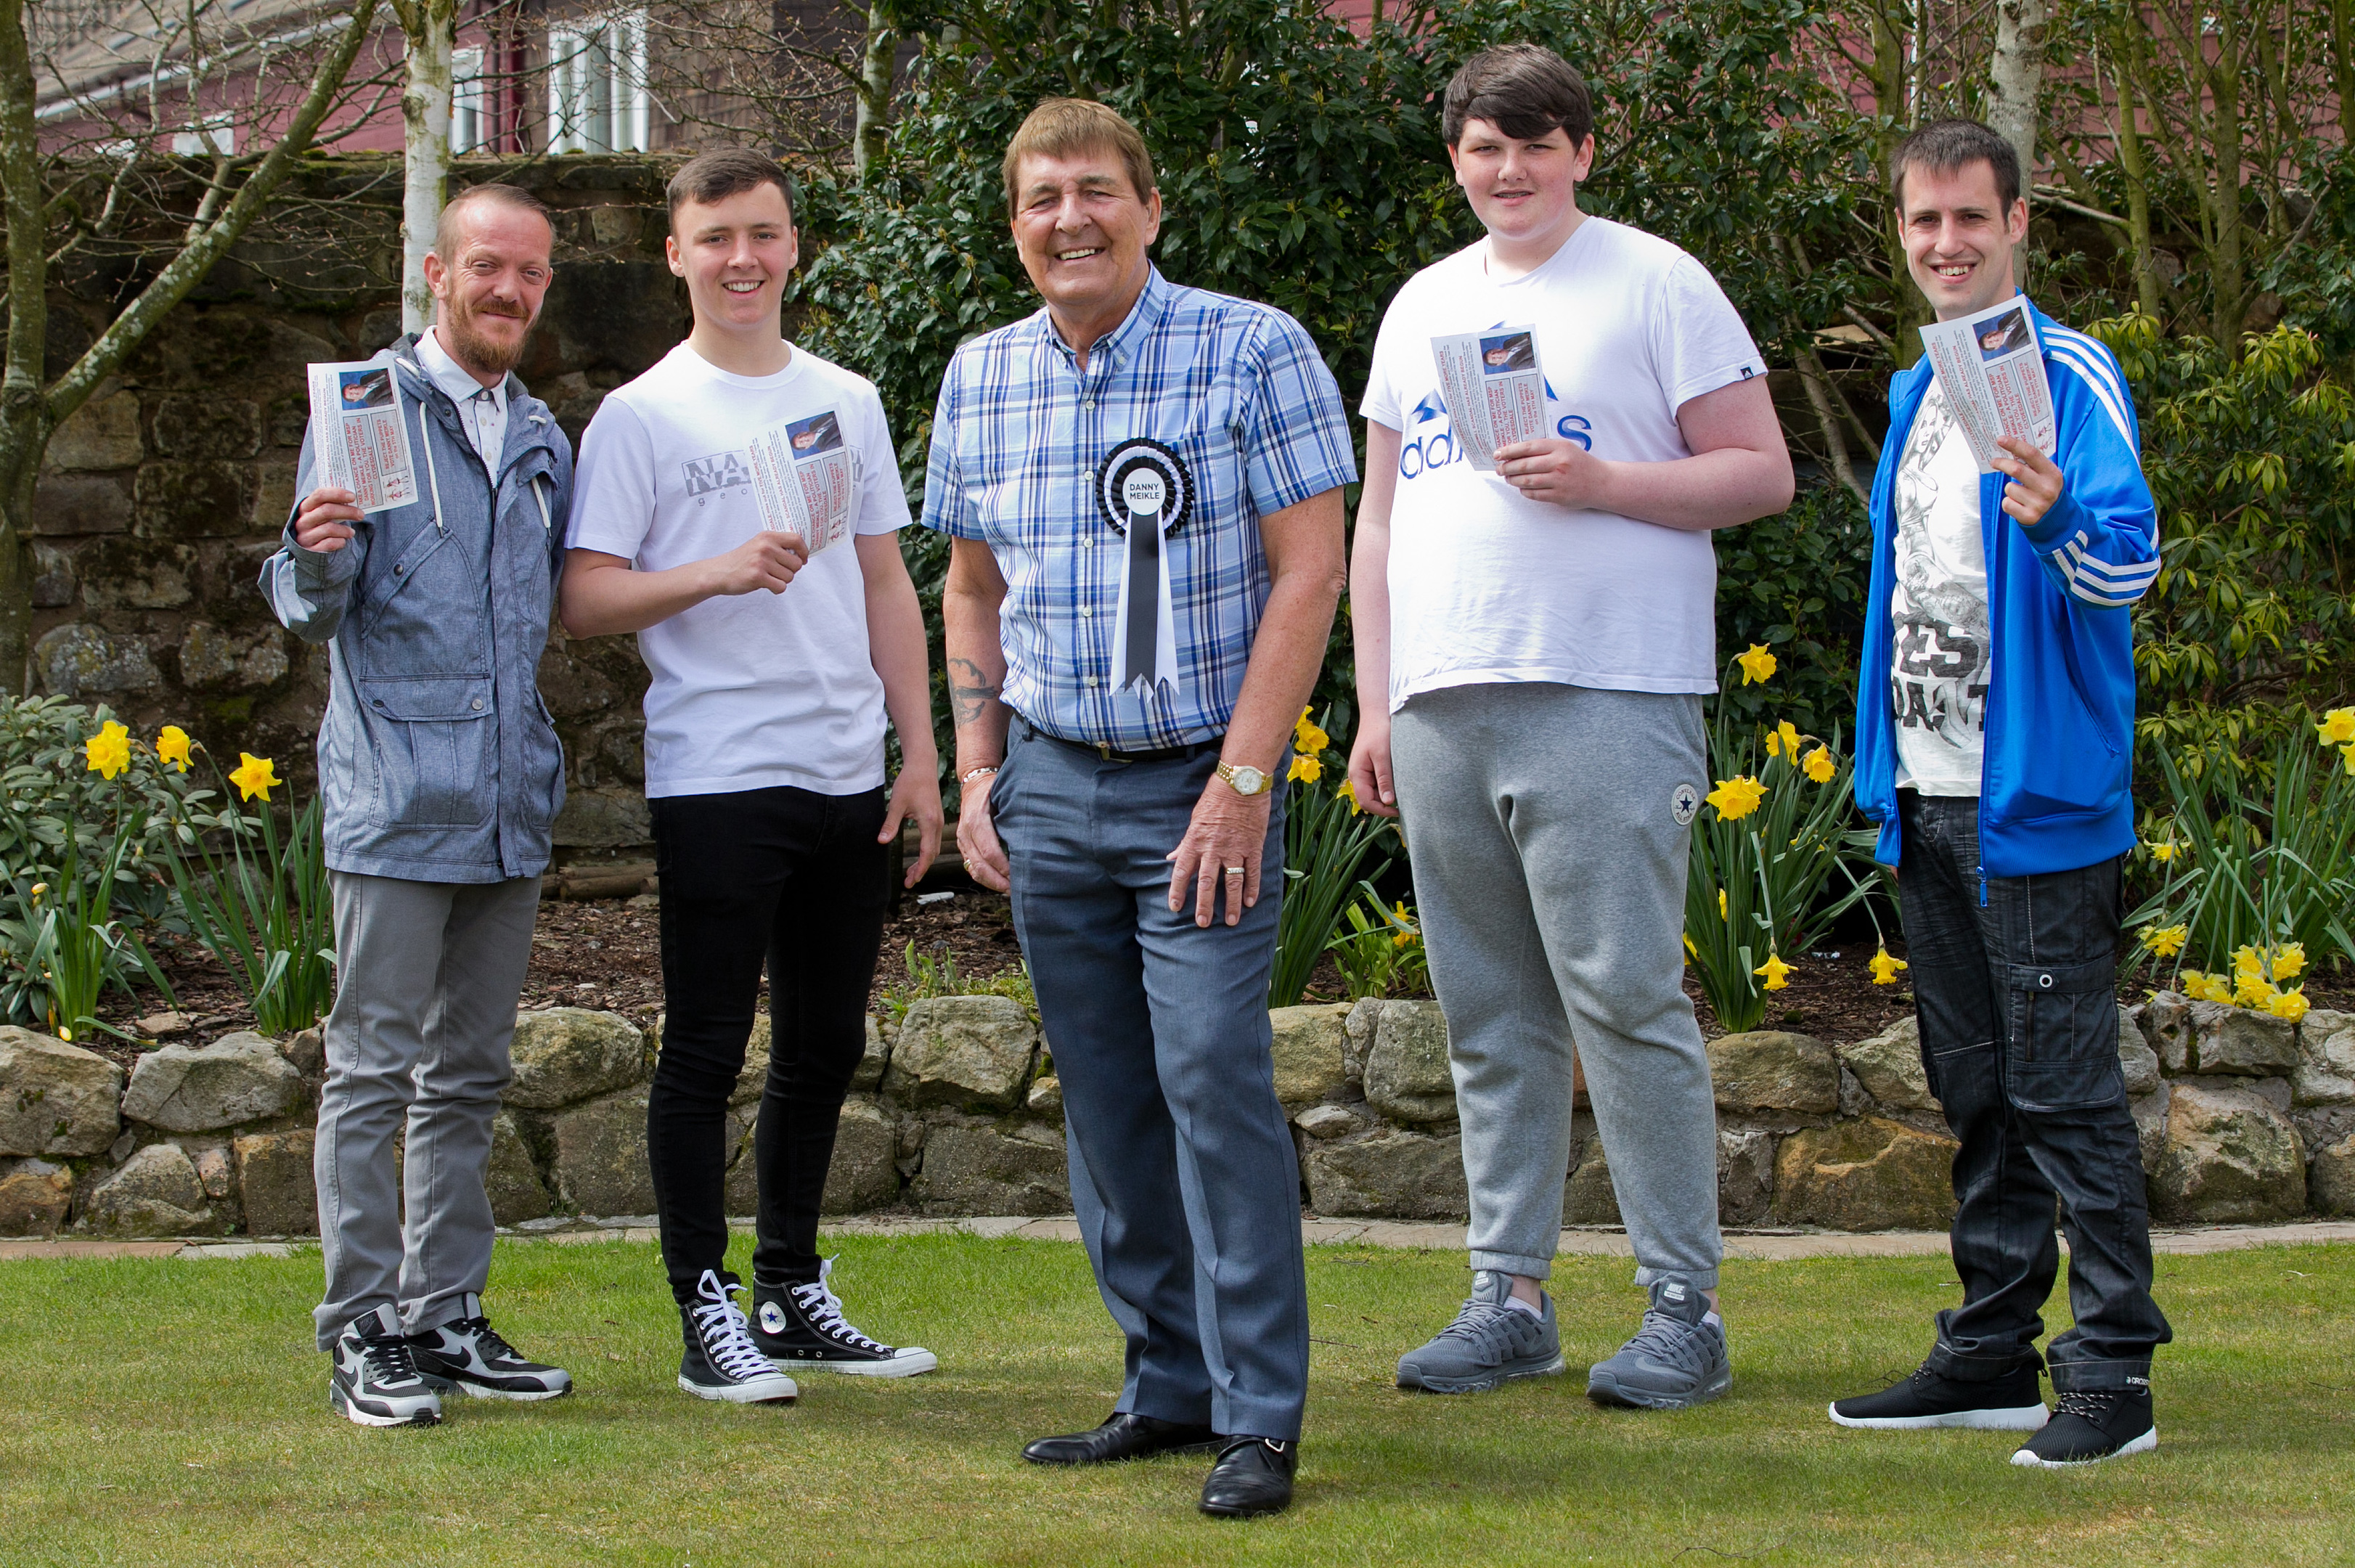 Independent candidate for local elections, Danny Meikle, with four young men who were delivering voting leaflets for him. (L-R): Billy Cowan (37), Lewis Meikle (18) grandson, Dan, Lewis Docherty (16), Donald Douglas (27). ( Independent candidate for local elections, Danny Meikle, with four young men who were delivering voting leaflets for him. (L-R): Billy Cowan (37), Lewis Meikle (18) grandson, Dan, Lewis Docherty (16), Donald Douglas (27). ( Independent candidate for local elections, Danny Meikle, with four young men who were delivering voting leaflets for him. (L-R): Billy Cowan (37), Lewis Meikle (18) grandson, Dan, Lewis Docherty (16), Donald Douglas (27). (Andrew Cawley/ DC Thomson)